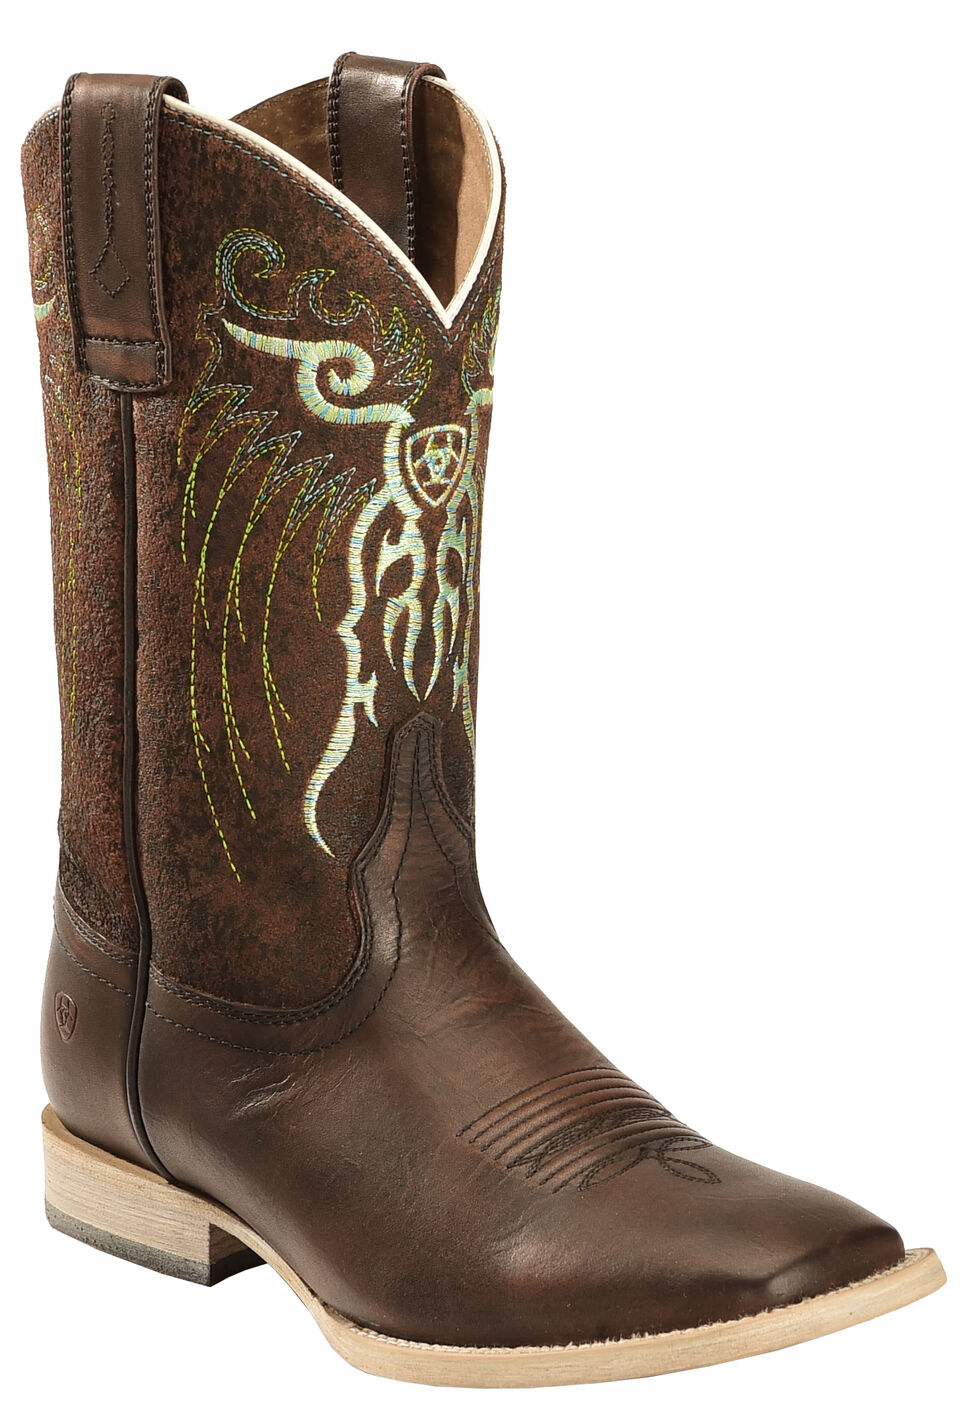 Ariat Boys' Copper Mesteno Boots - Wide Square Toe , Copper, hi-res